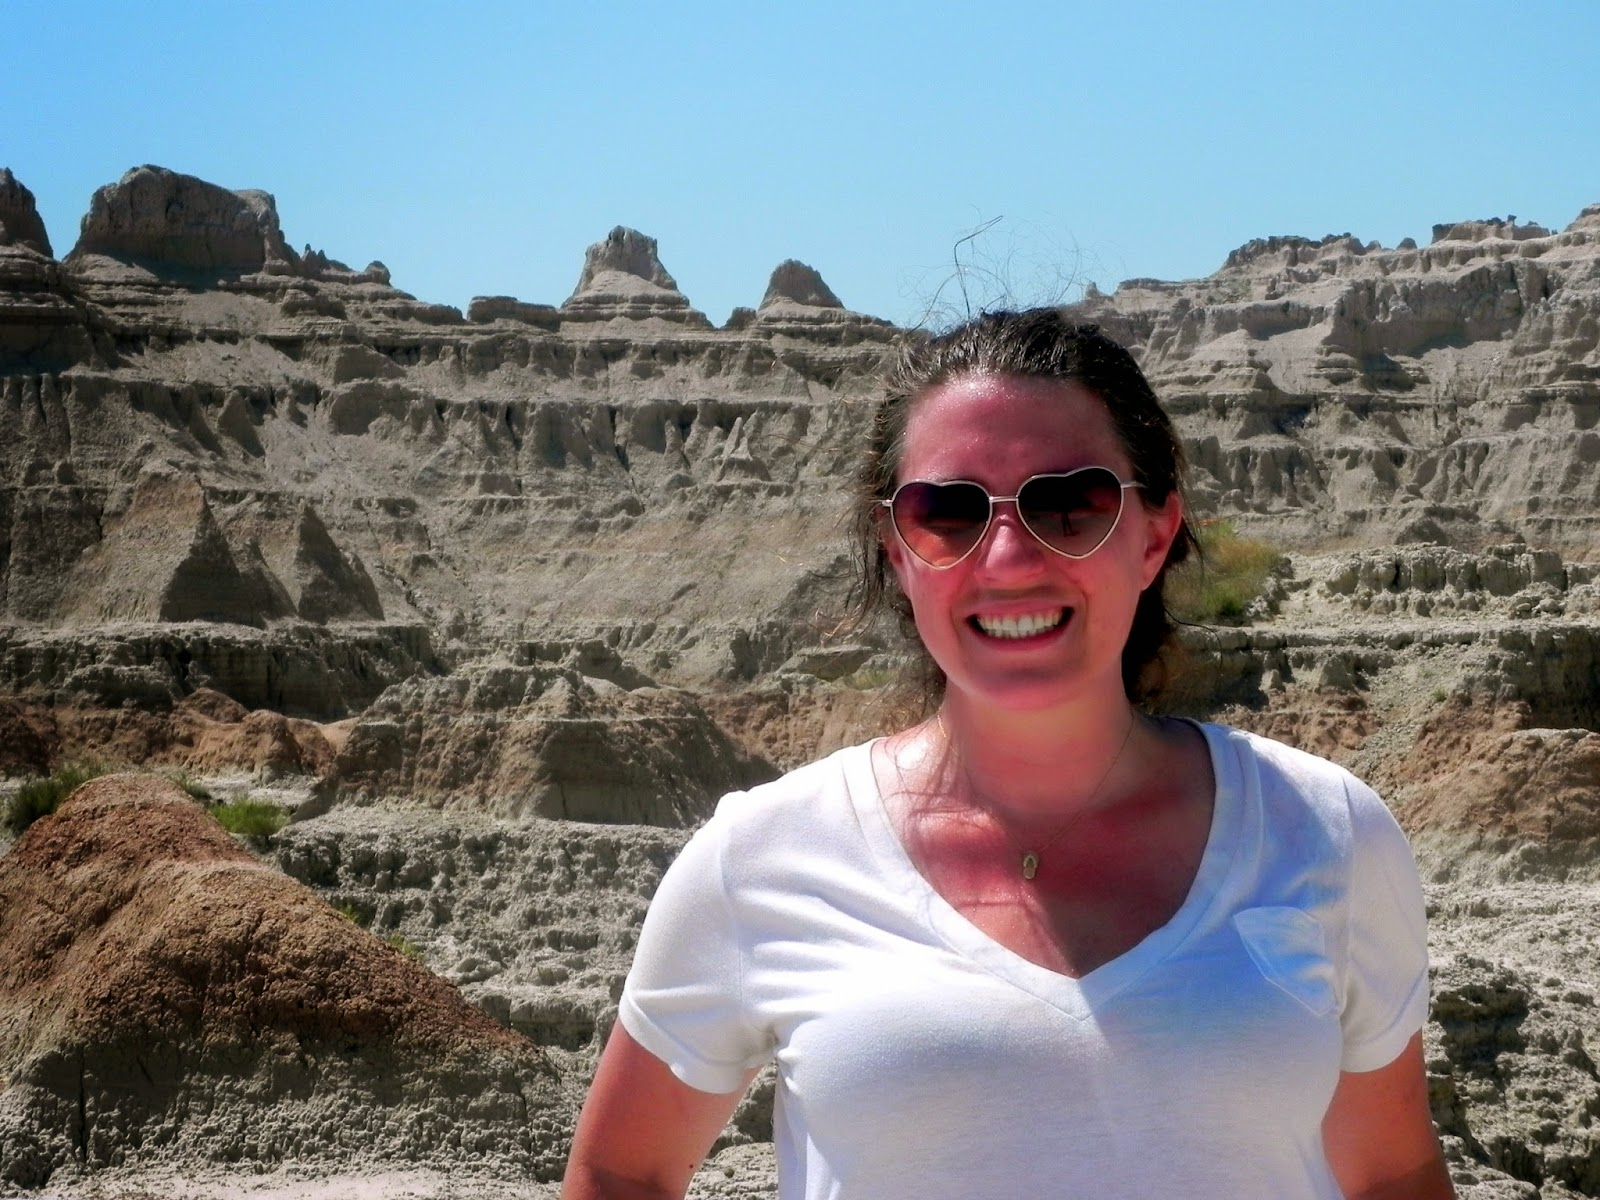 Me at Badlands!